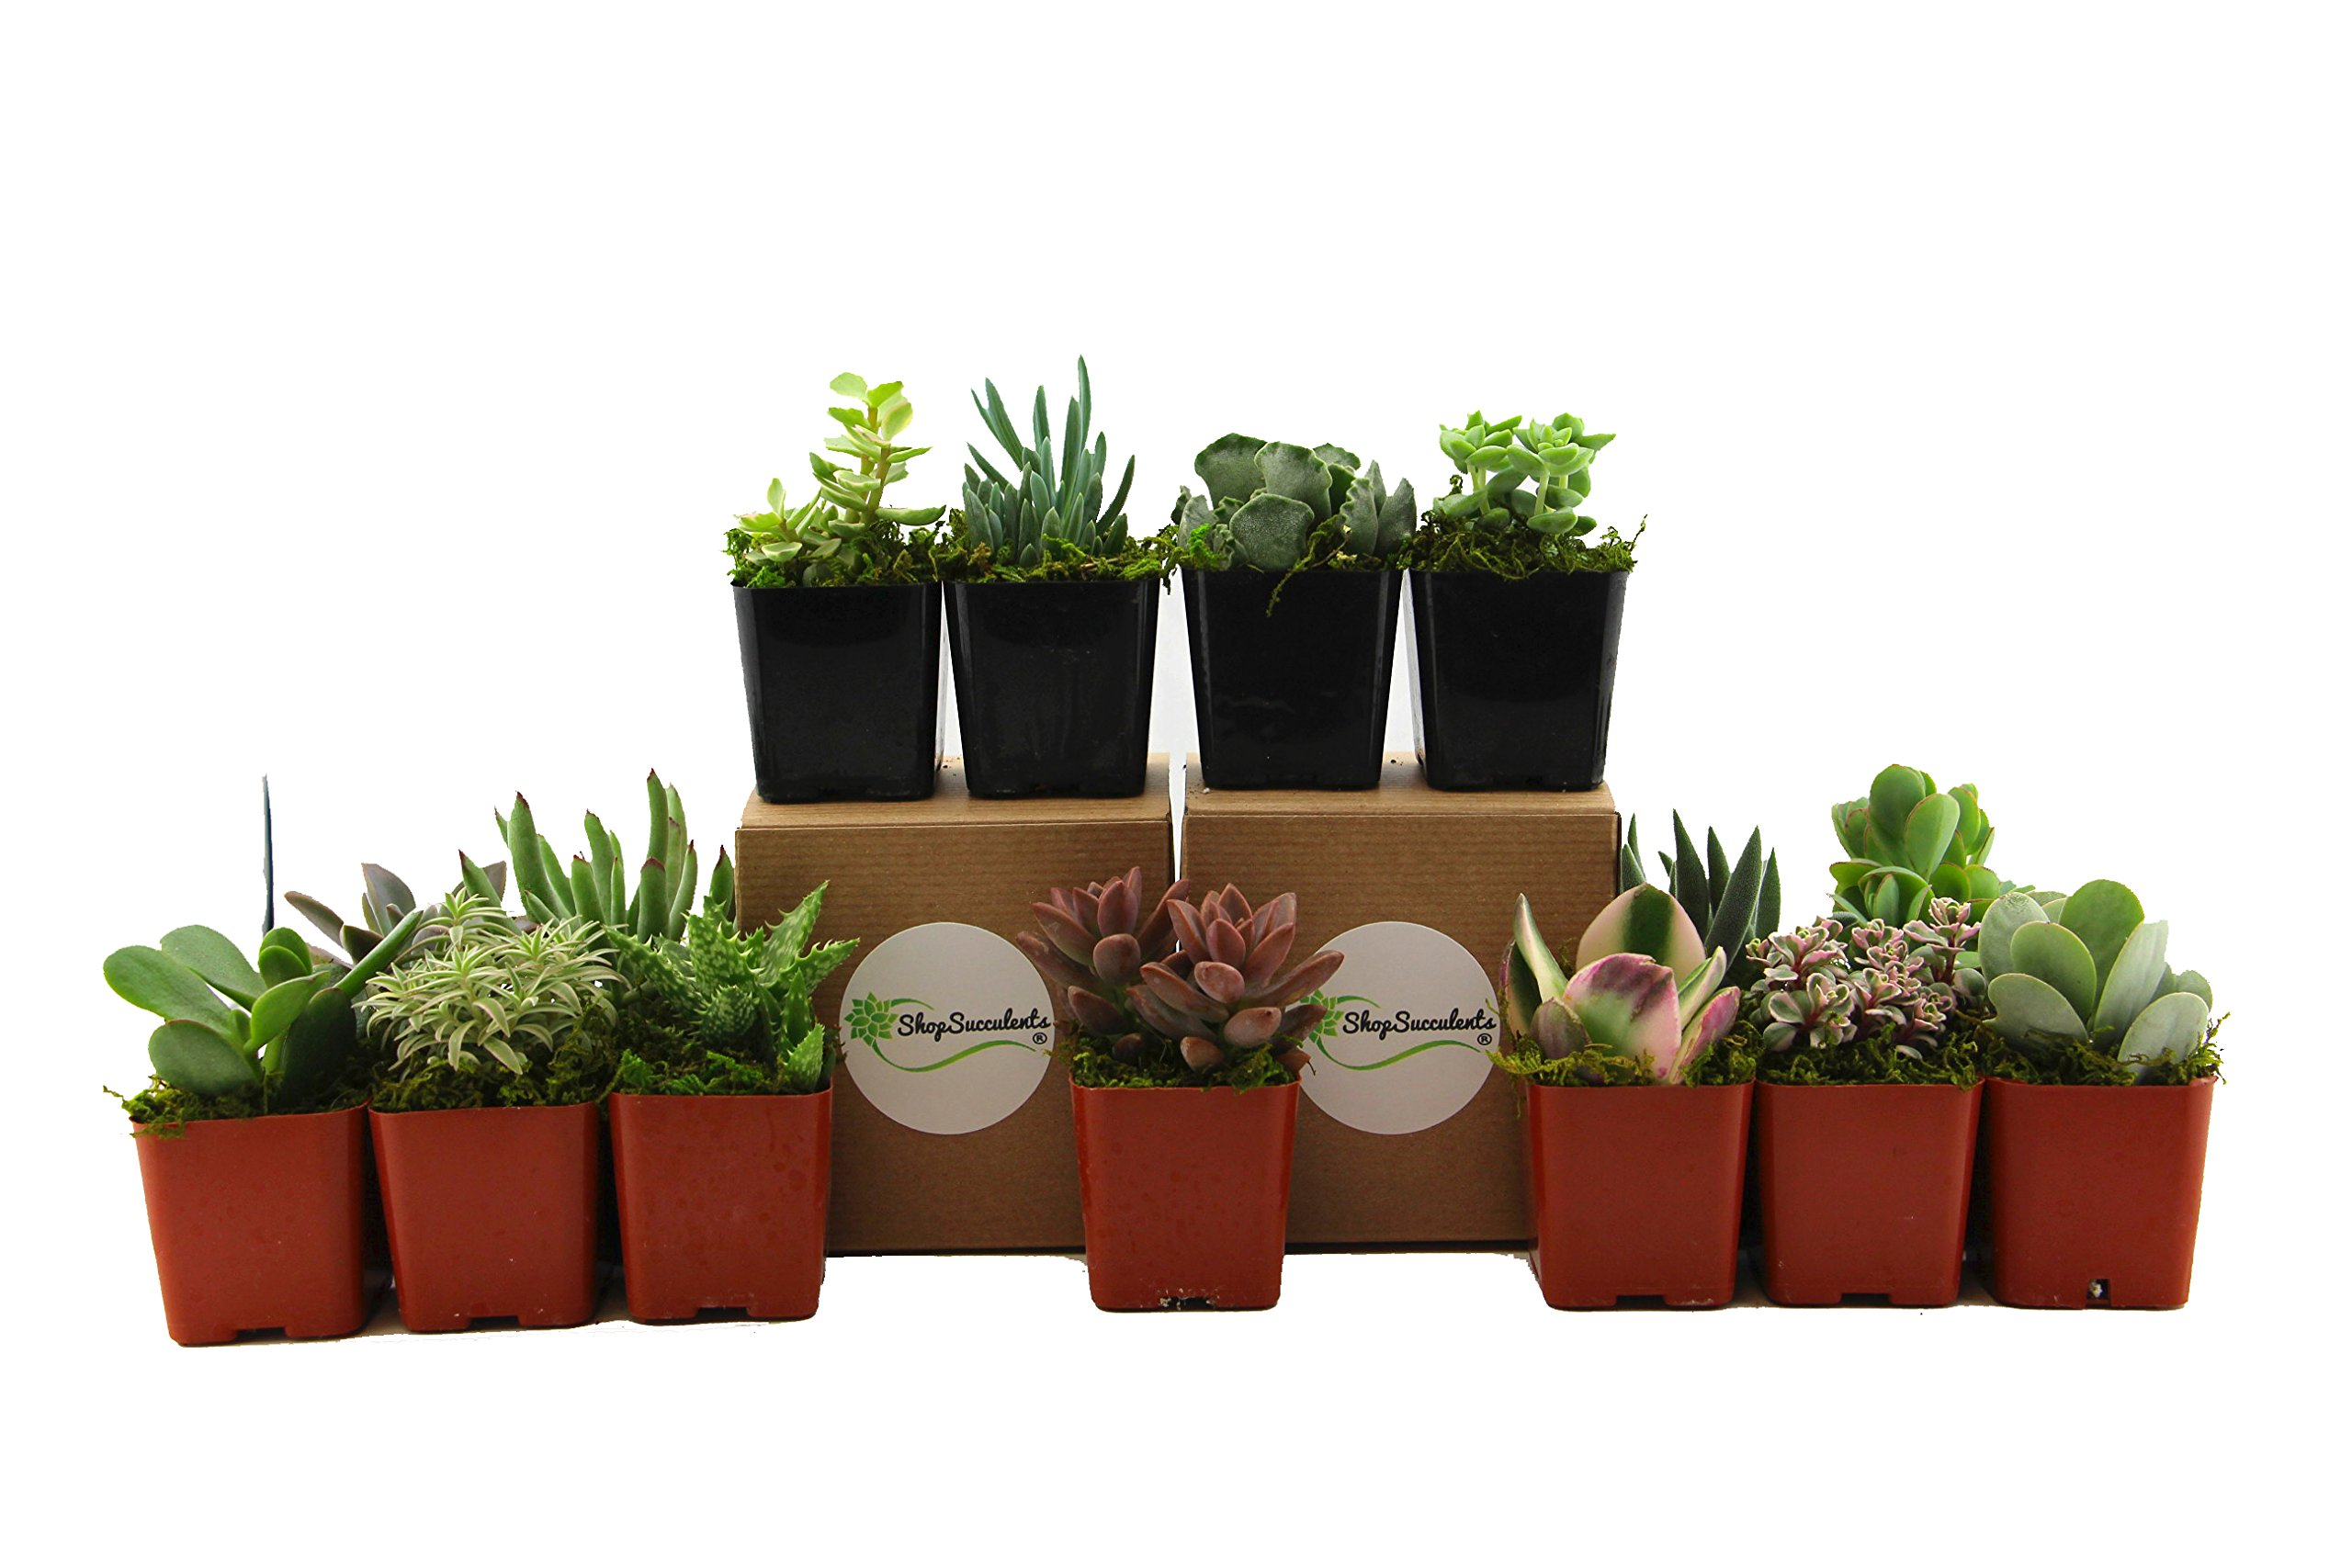 Shop Succulents | Unique Live Plants, Hand Selected Variety Pack of Mini Succulents | | Collection of 15 in 2'' pots, 15, Multicolor